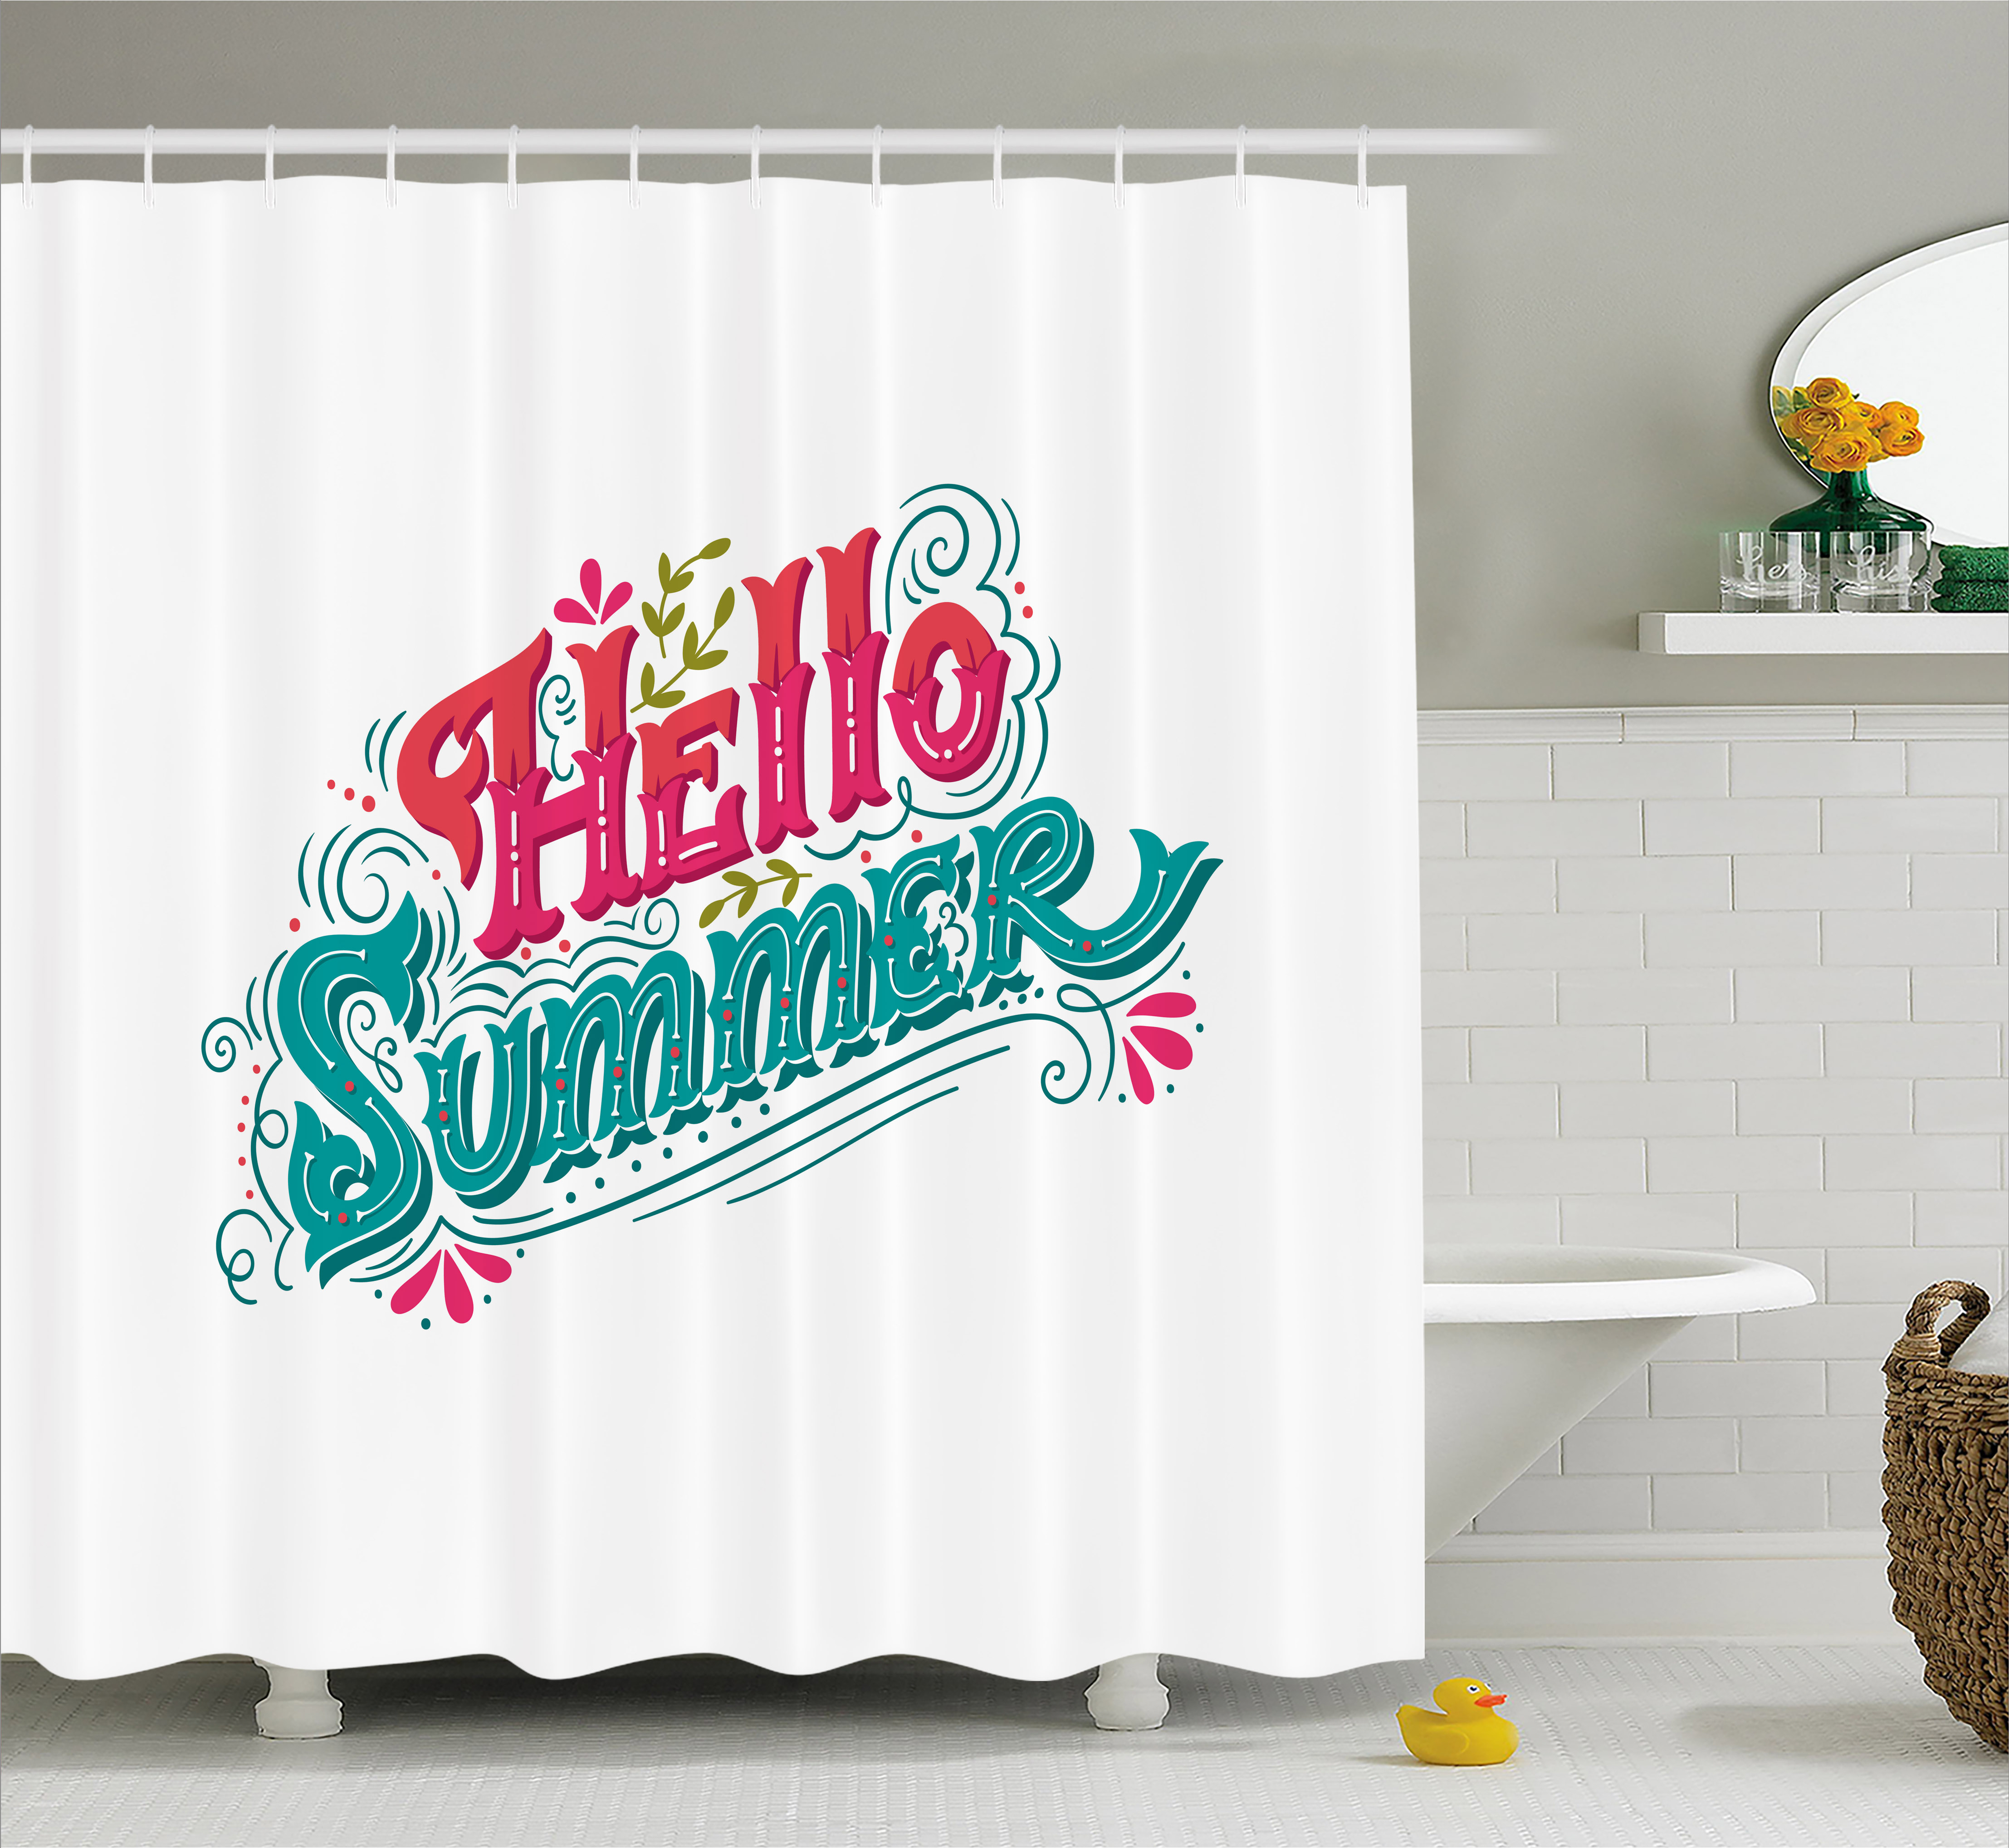 Hello Summer Shower Curtain, Handwritten Vintage Calligraphy with Floral Decoration Details, Fabric Bathroom Set with Hooks, 69W X 84L Inches Extra Long, Red Magenta Pale Sea Green, by Ambesonne